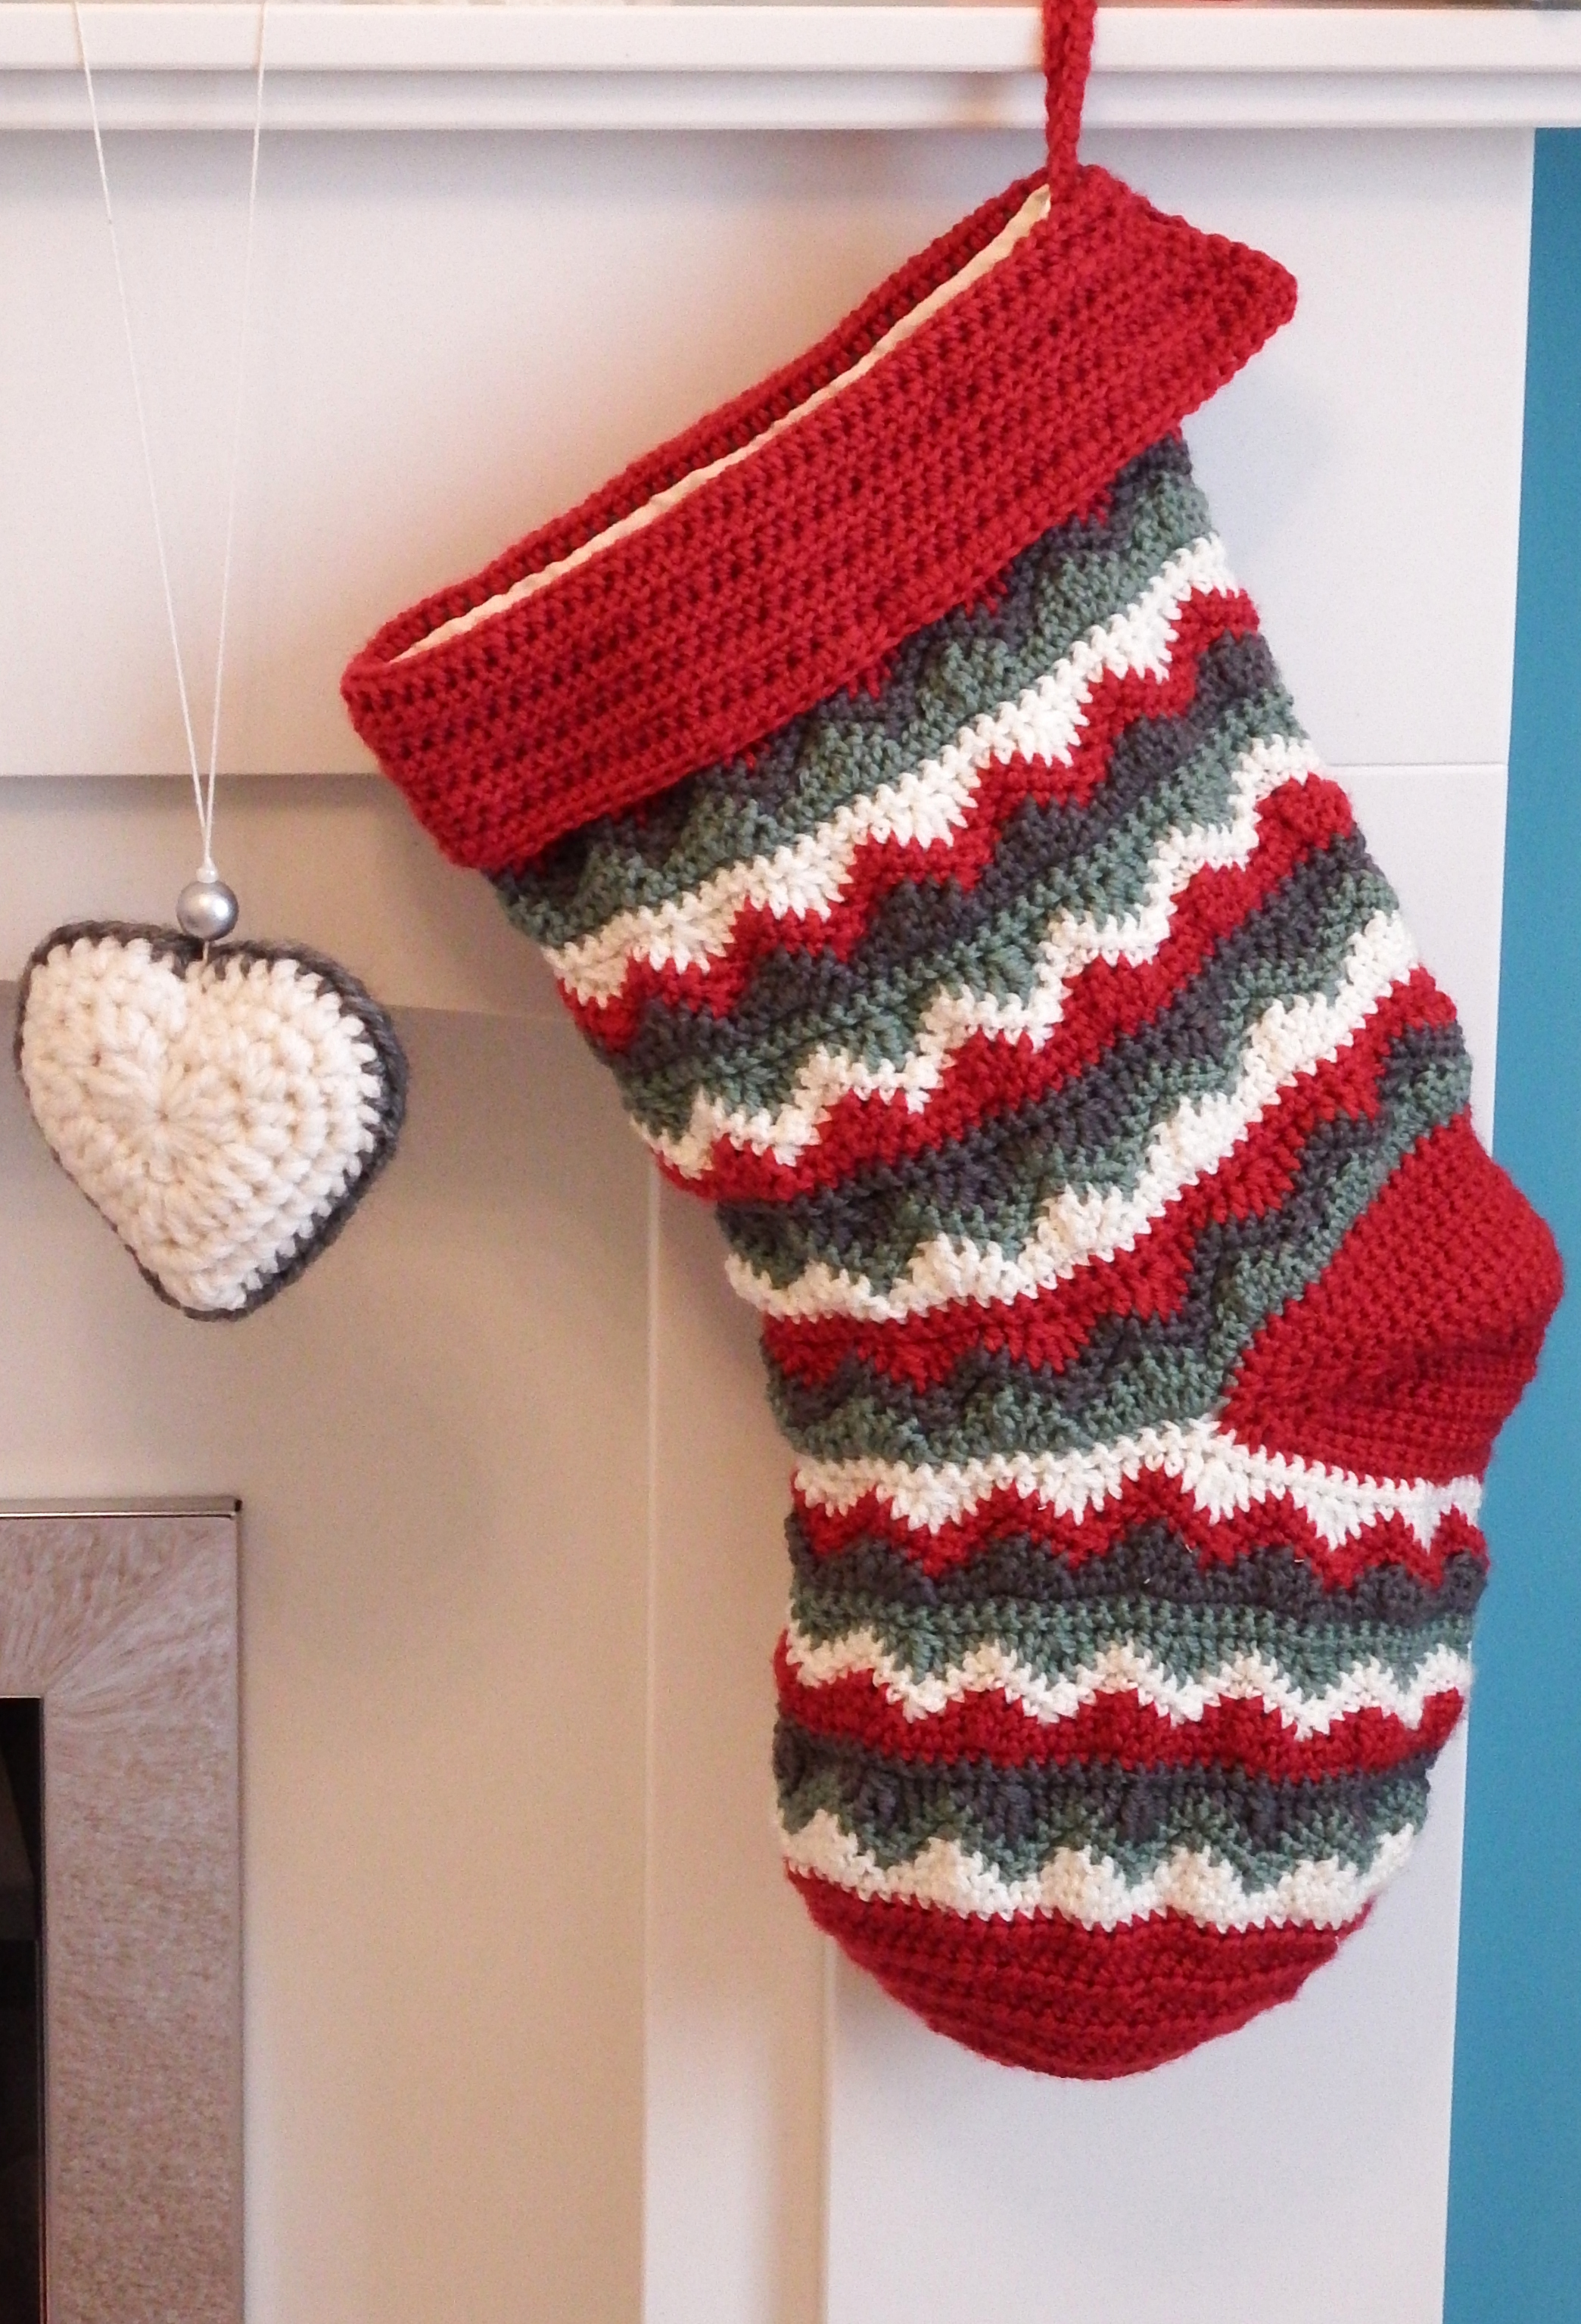 Crochet Patterns For Xmas Stockings : Christmas Stocking Make My Day Creative